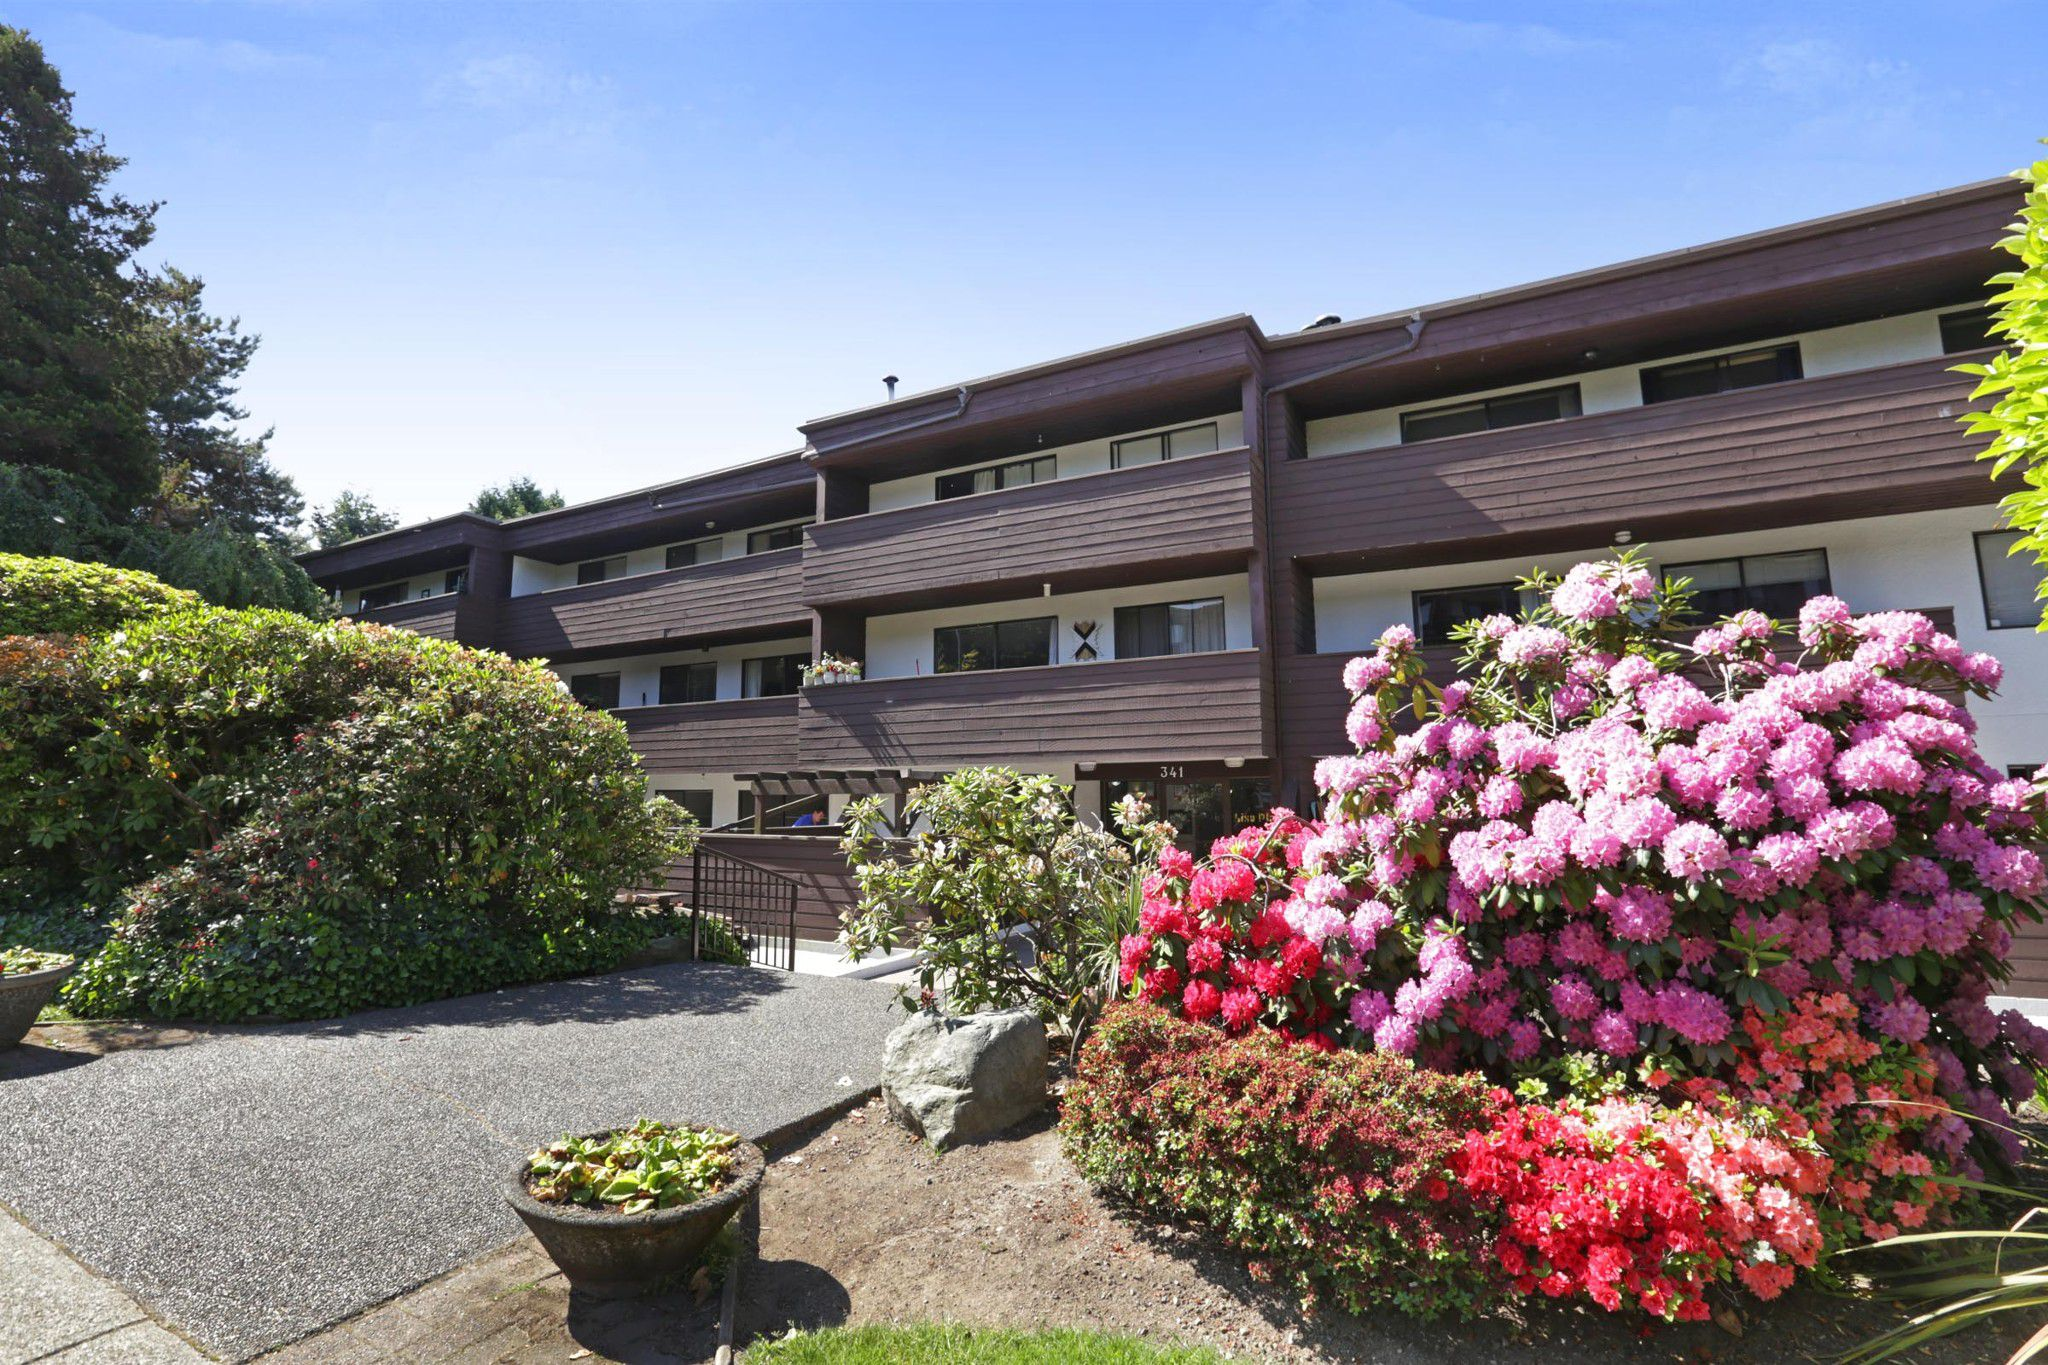 """Main Photo: 107 341 W 3RD Street in North Vancouver: Lower Lonsdale Condo for sale in """"Lisa Place"""" : MLS®# R2271660"""